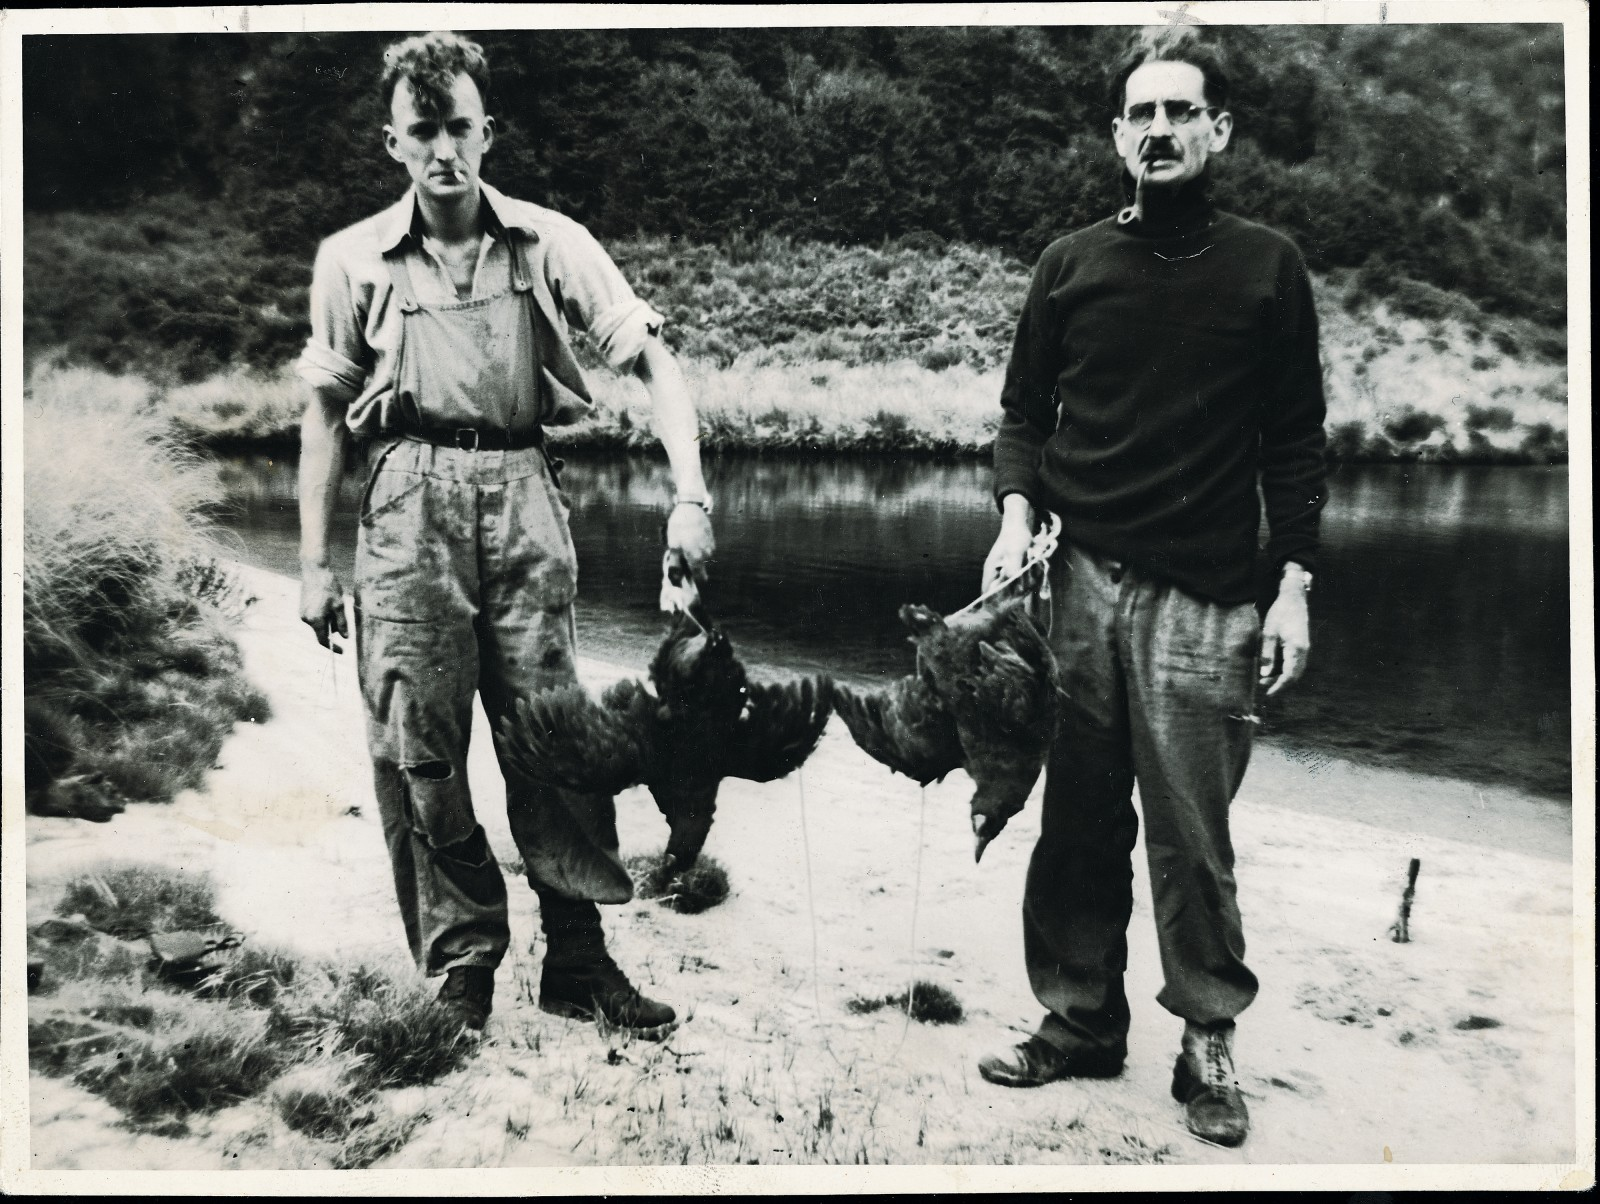 When Dr Geoffrey Orbell, a keen ornithologist and hunter with a lifelong interest in finding a living takahe, captured movie footage of the species and came up with images of himself and fellow-hunter Neil McCrostie nonchalantly holding a pair of live takahe in 1948, the discovery made world headlines. Along with cattle, fat lambs and Foveaux Strait whalers, the takahe was placed on stamps (above) commemorating the centennial of Southland in 1956.